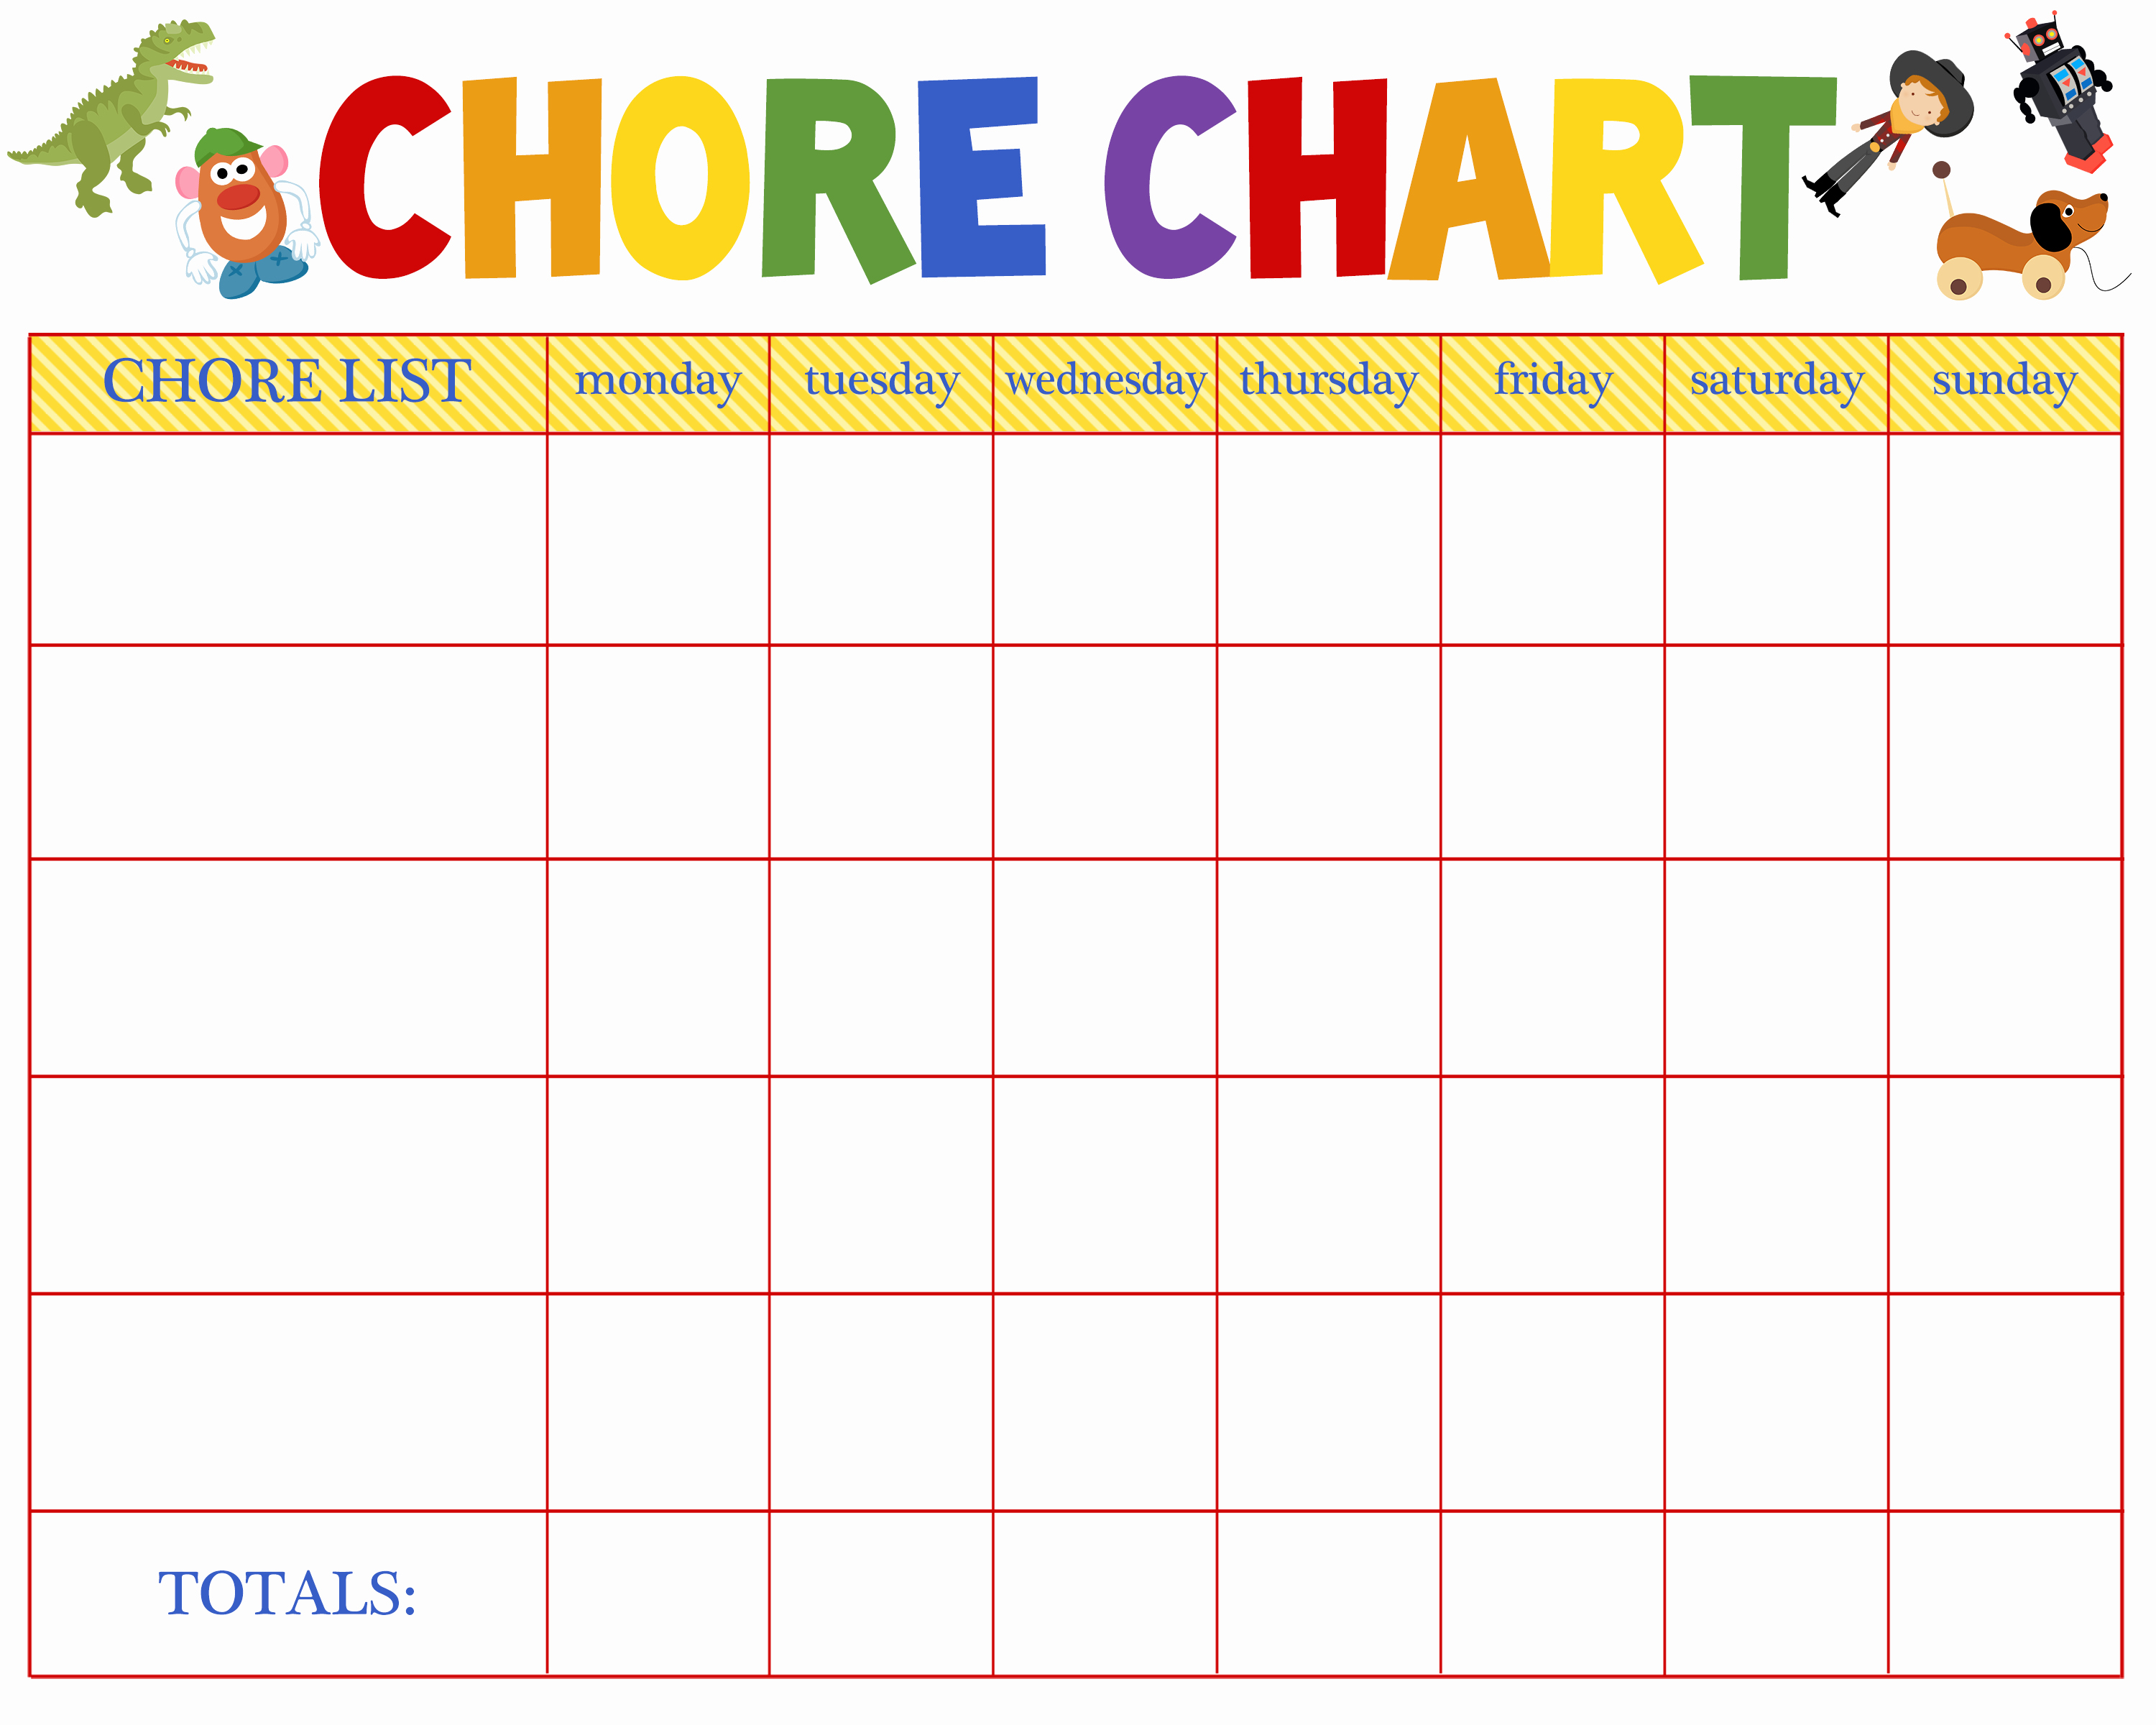 Free Chore Chart Template Beautiful Free Behavioral Aid Printables Jumping Jax Designs